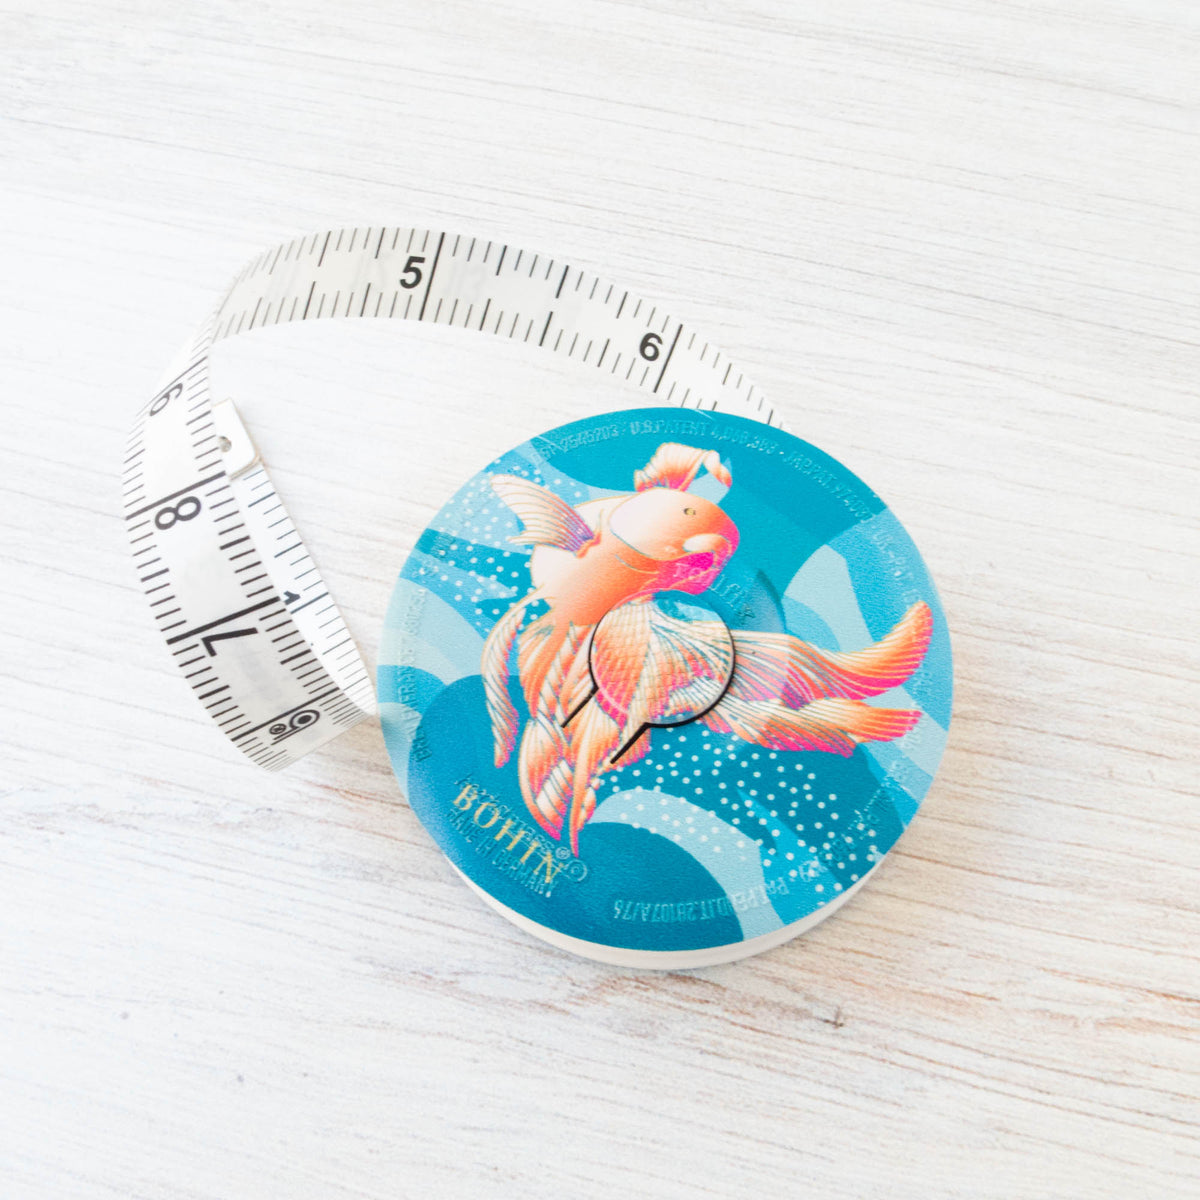 Bohin Tape Measure - Carp Tape Measure - Snuggly Monkey